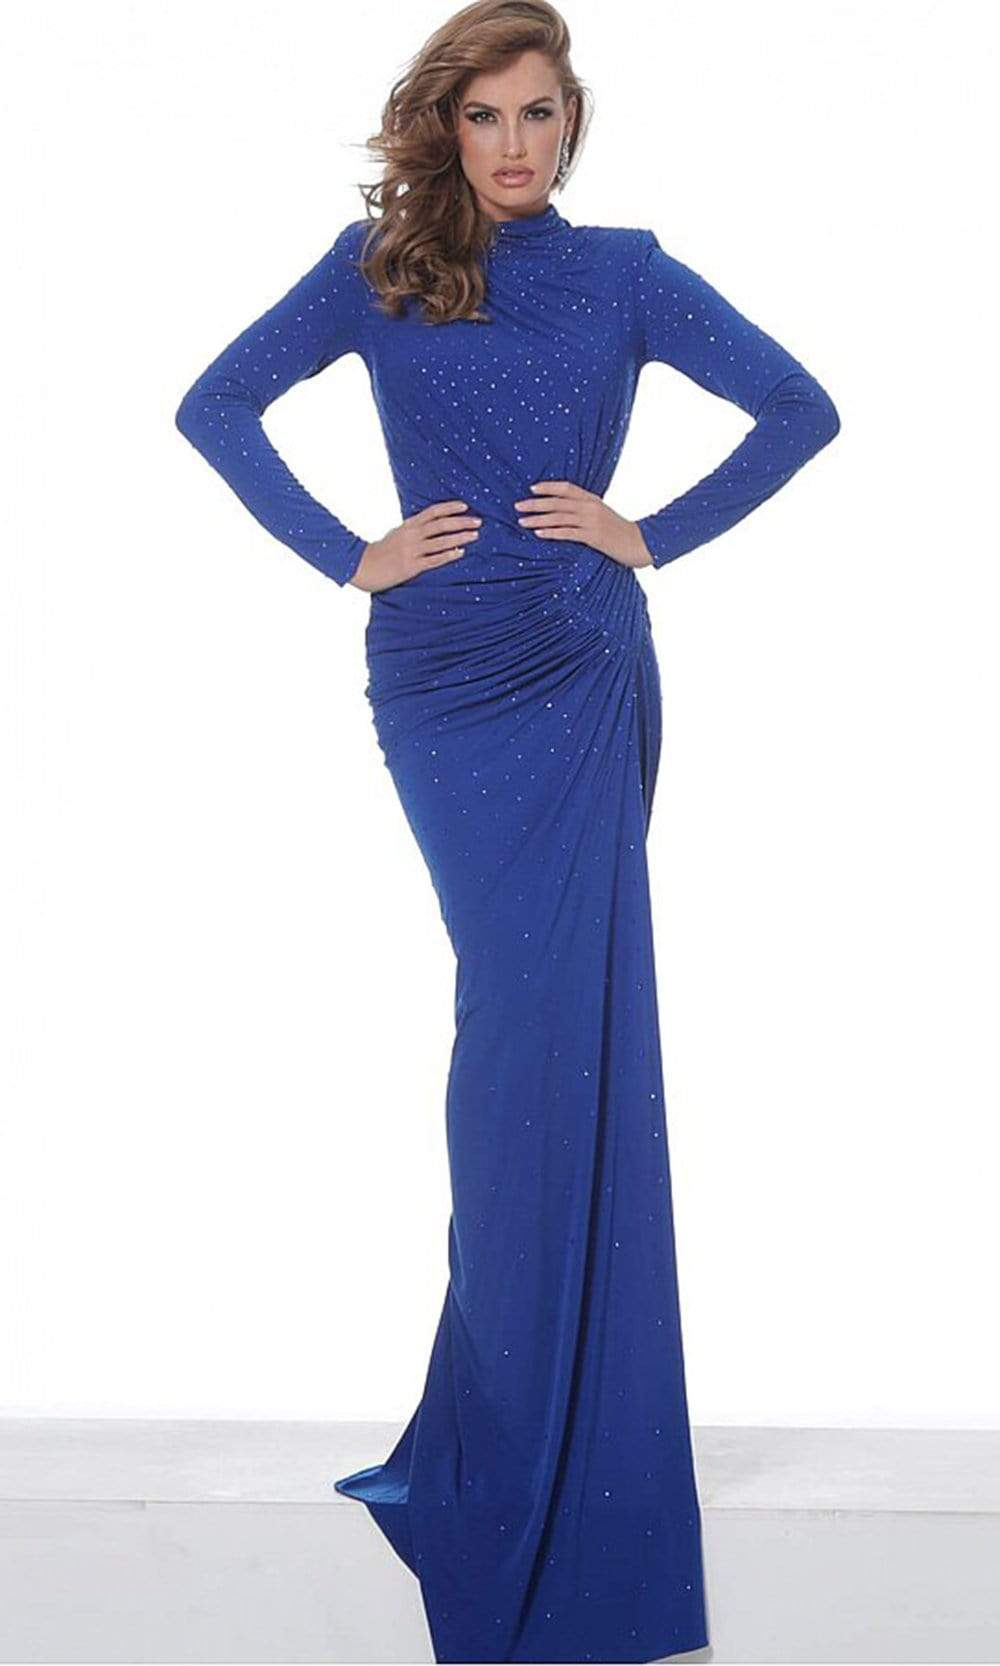 Jovani - 02566 Long Sleeve High Neck Beaded Jersey Evening Dress Evening Dresses 00 / Royal